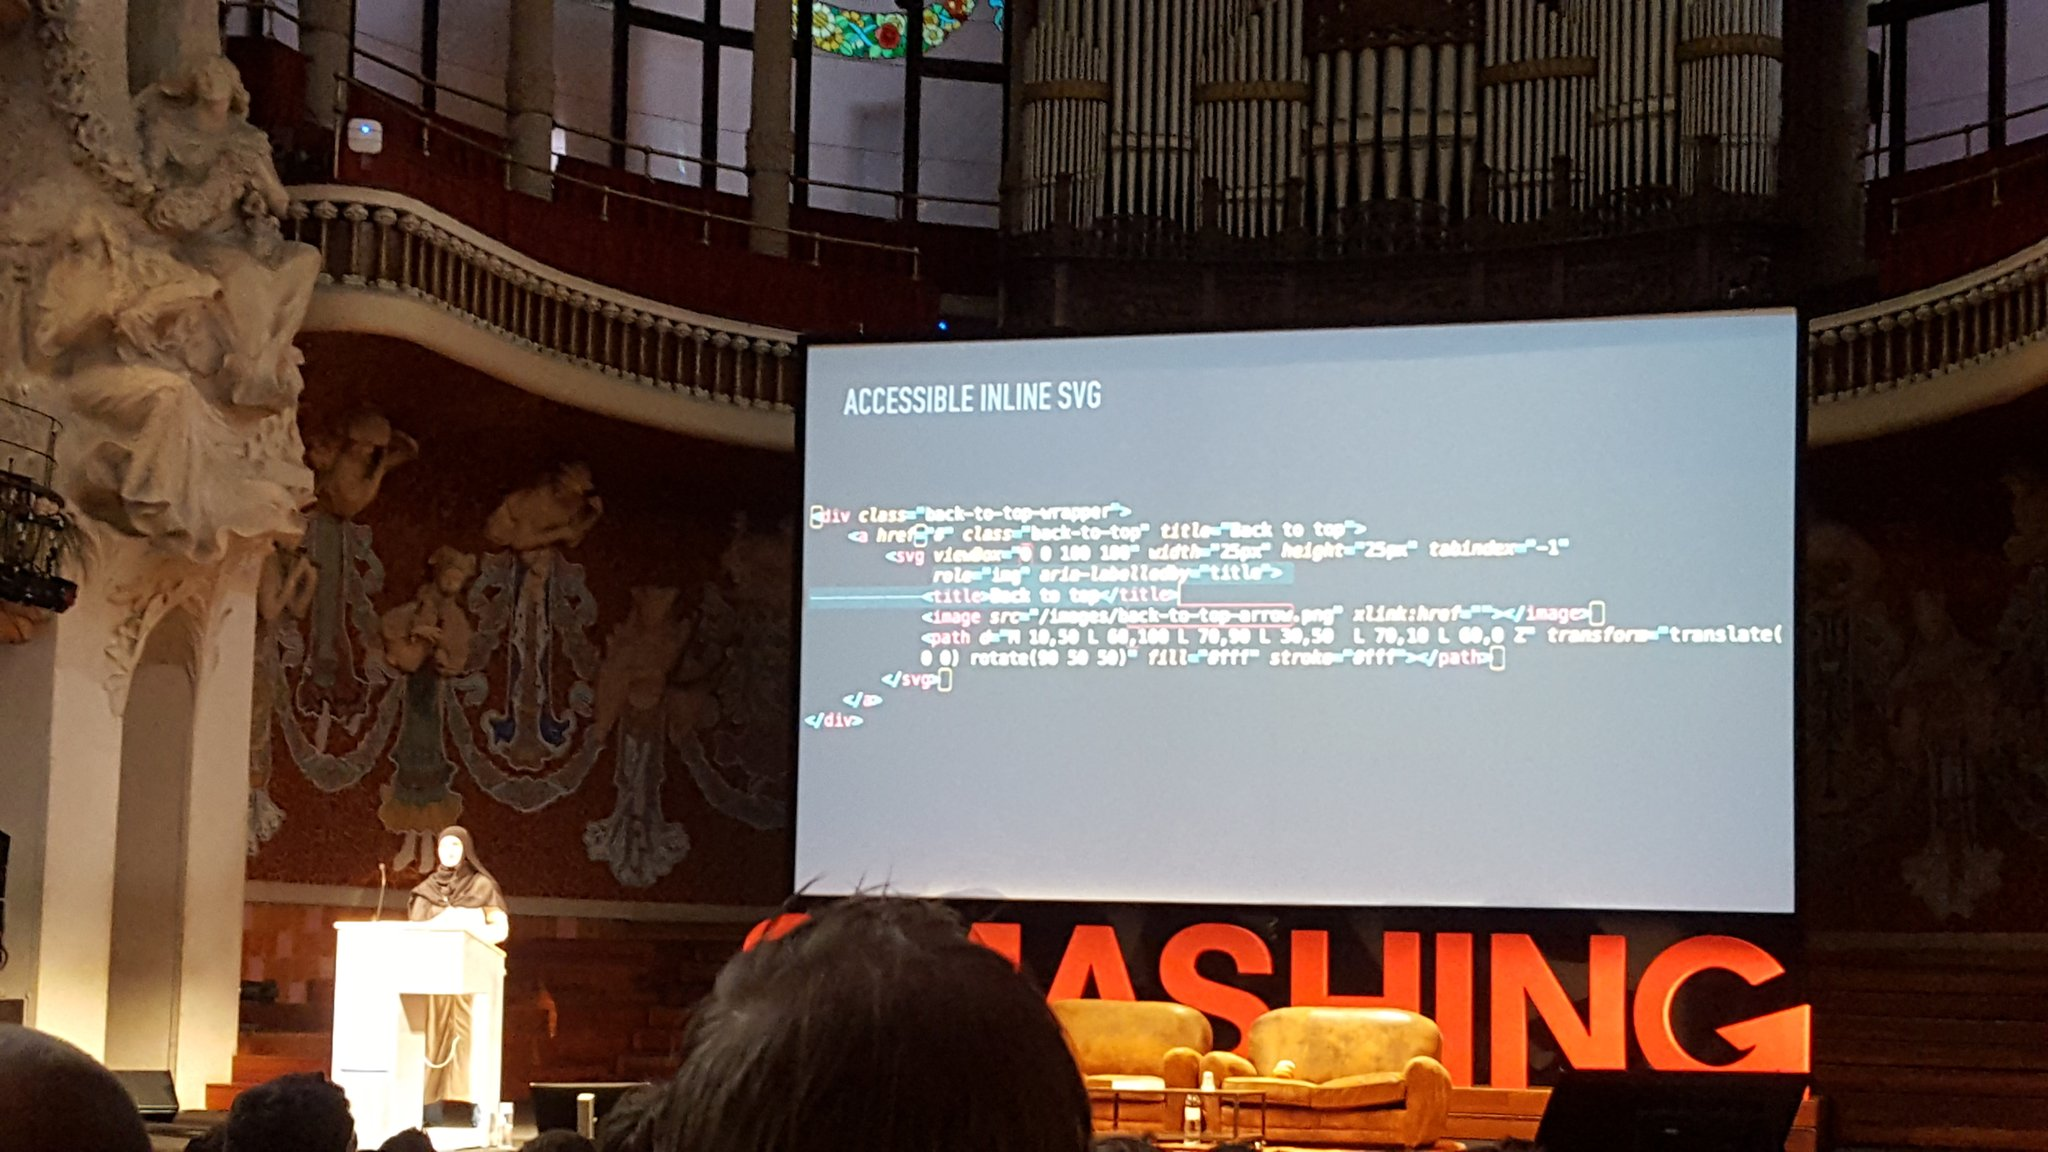 Very inspiring talk on accessibility improvements for the new Smashingmag site. Brillant @SaraSoueidan #smashingconf https://t.co/ydNgmS5T15